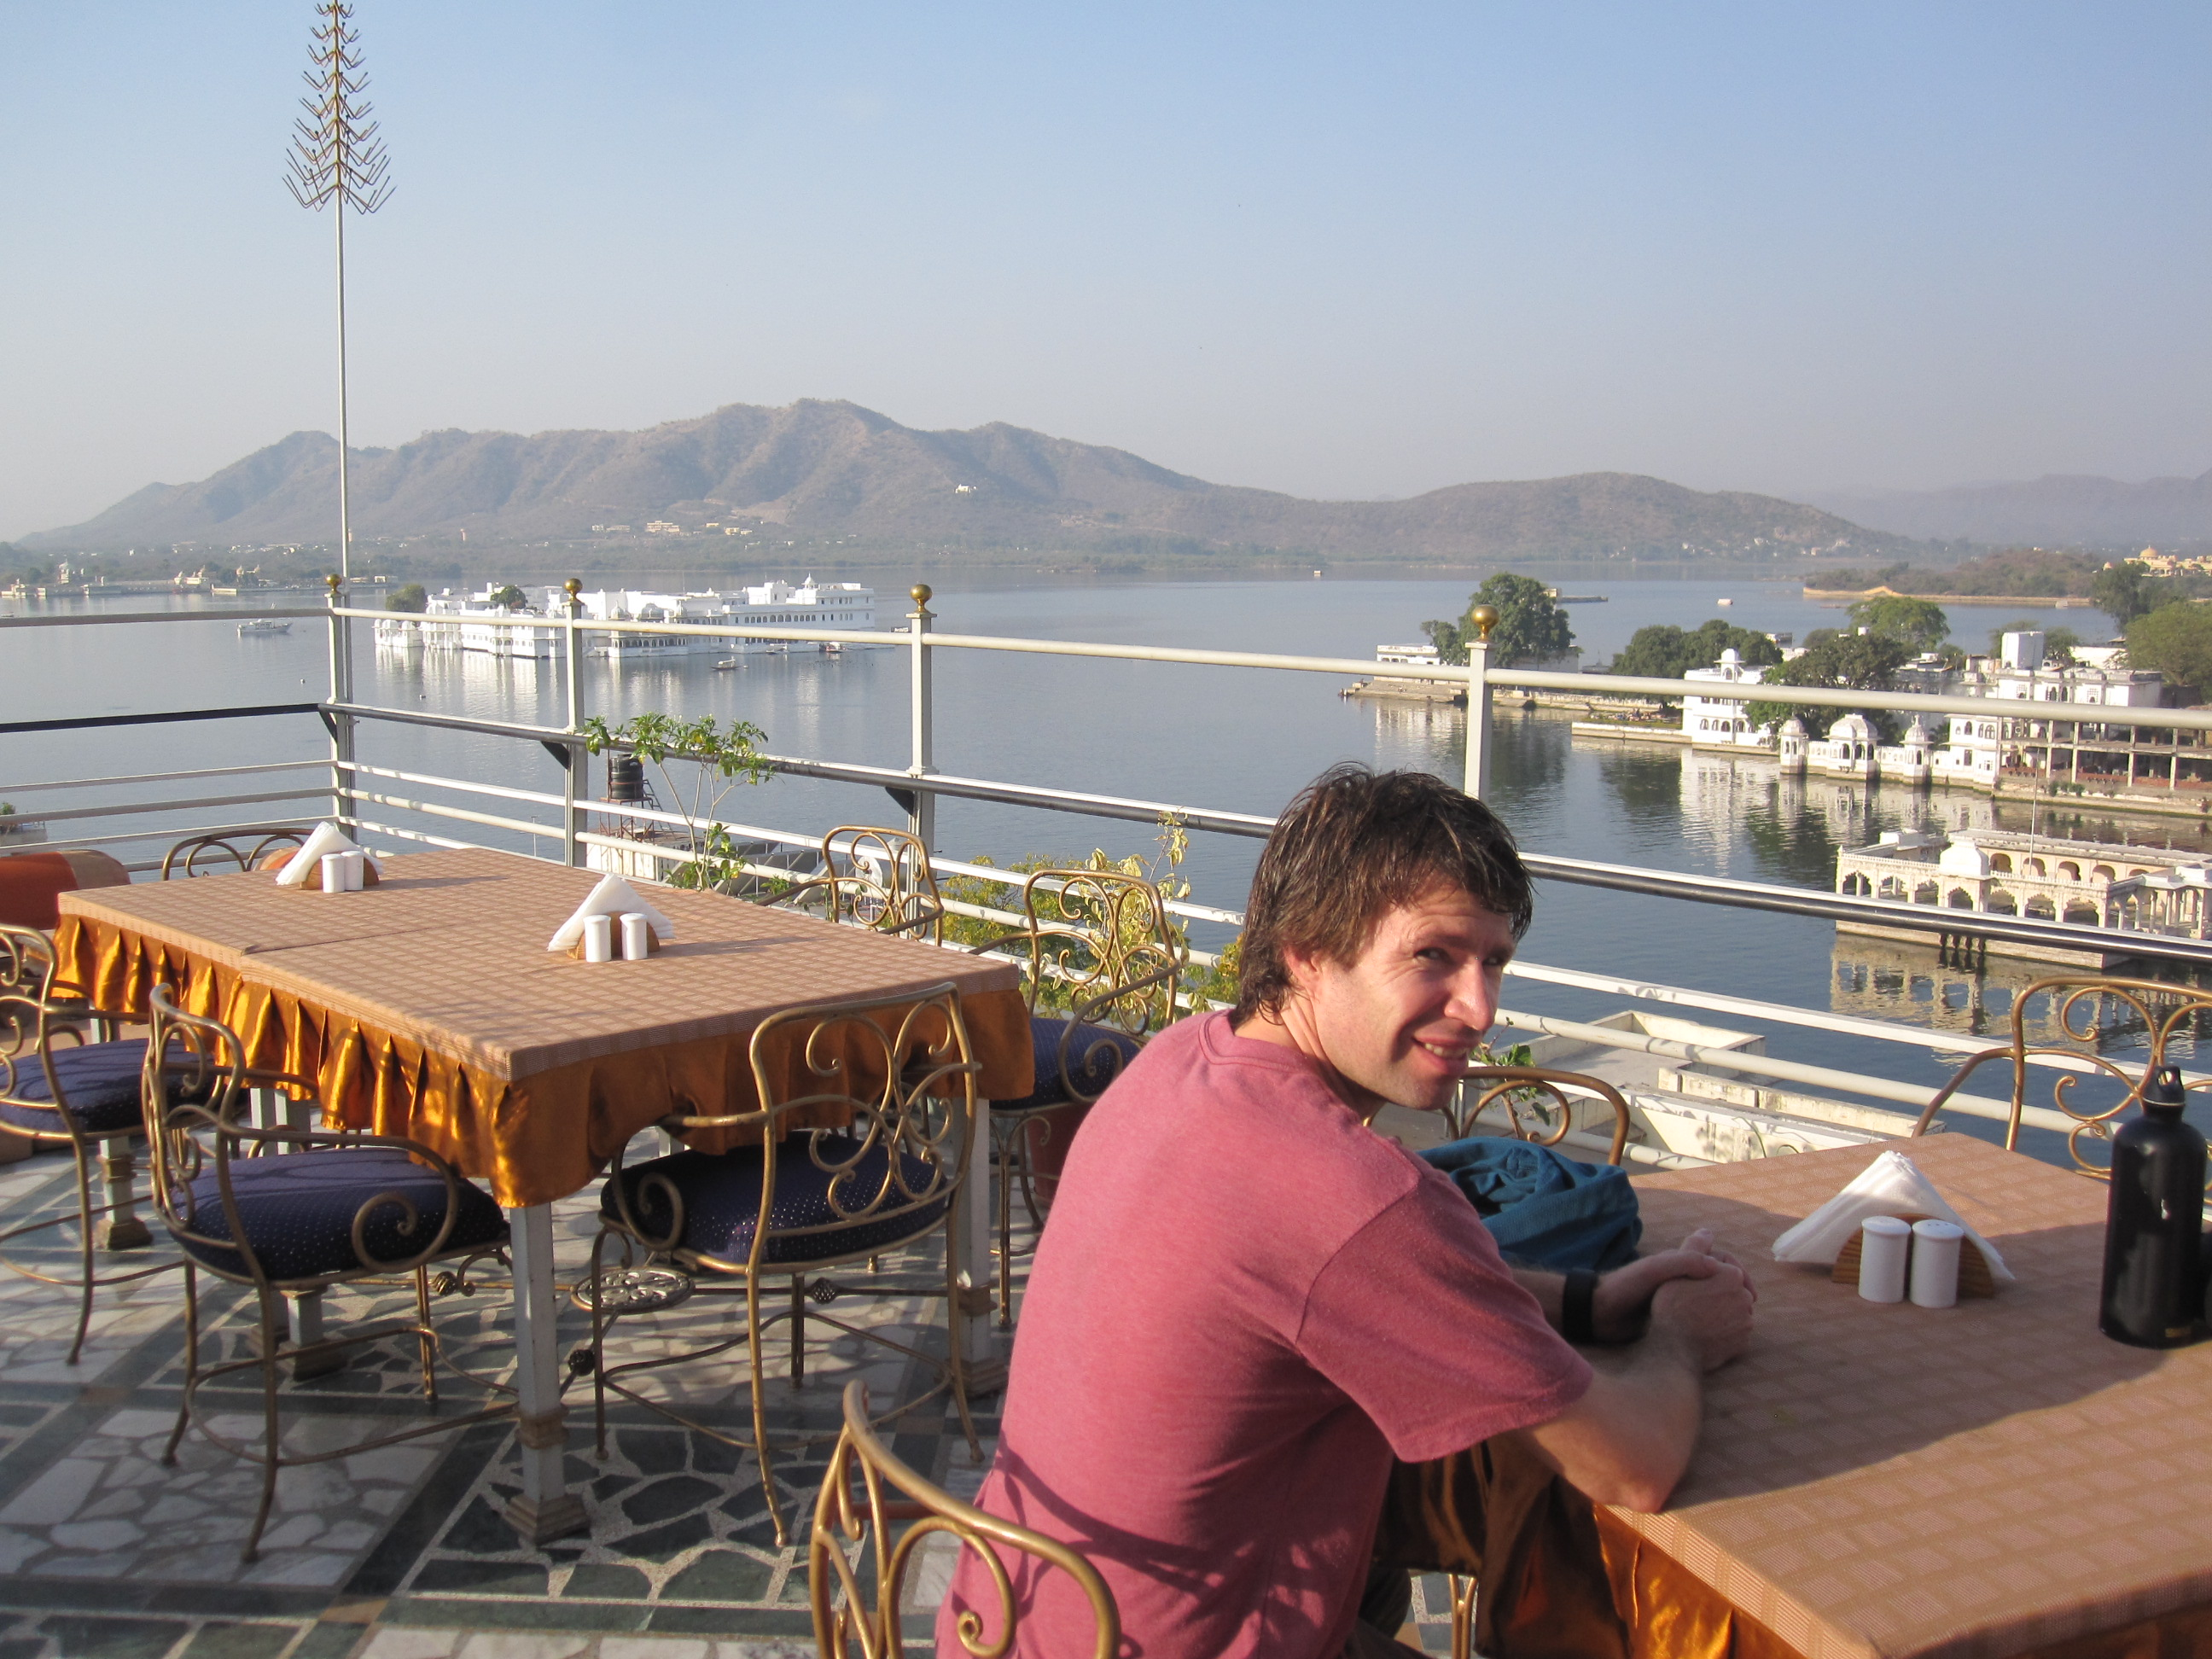 Squinting on the Mewar rooftop